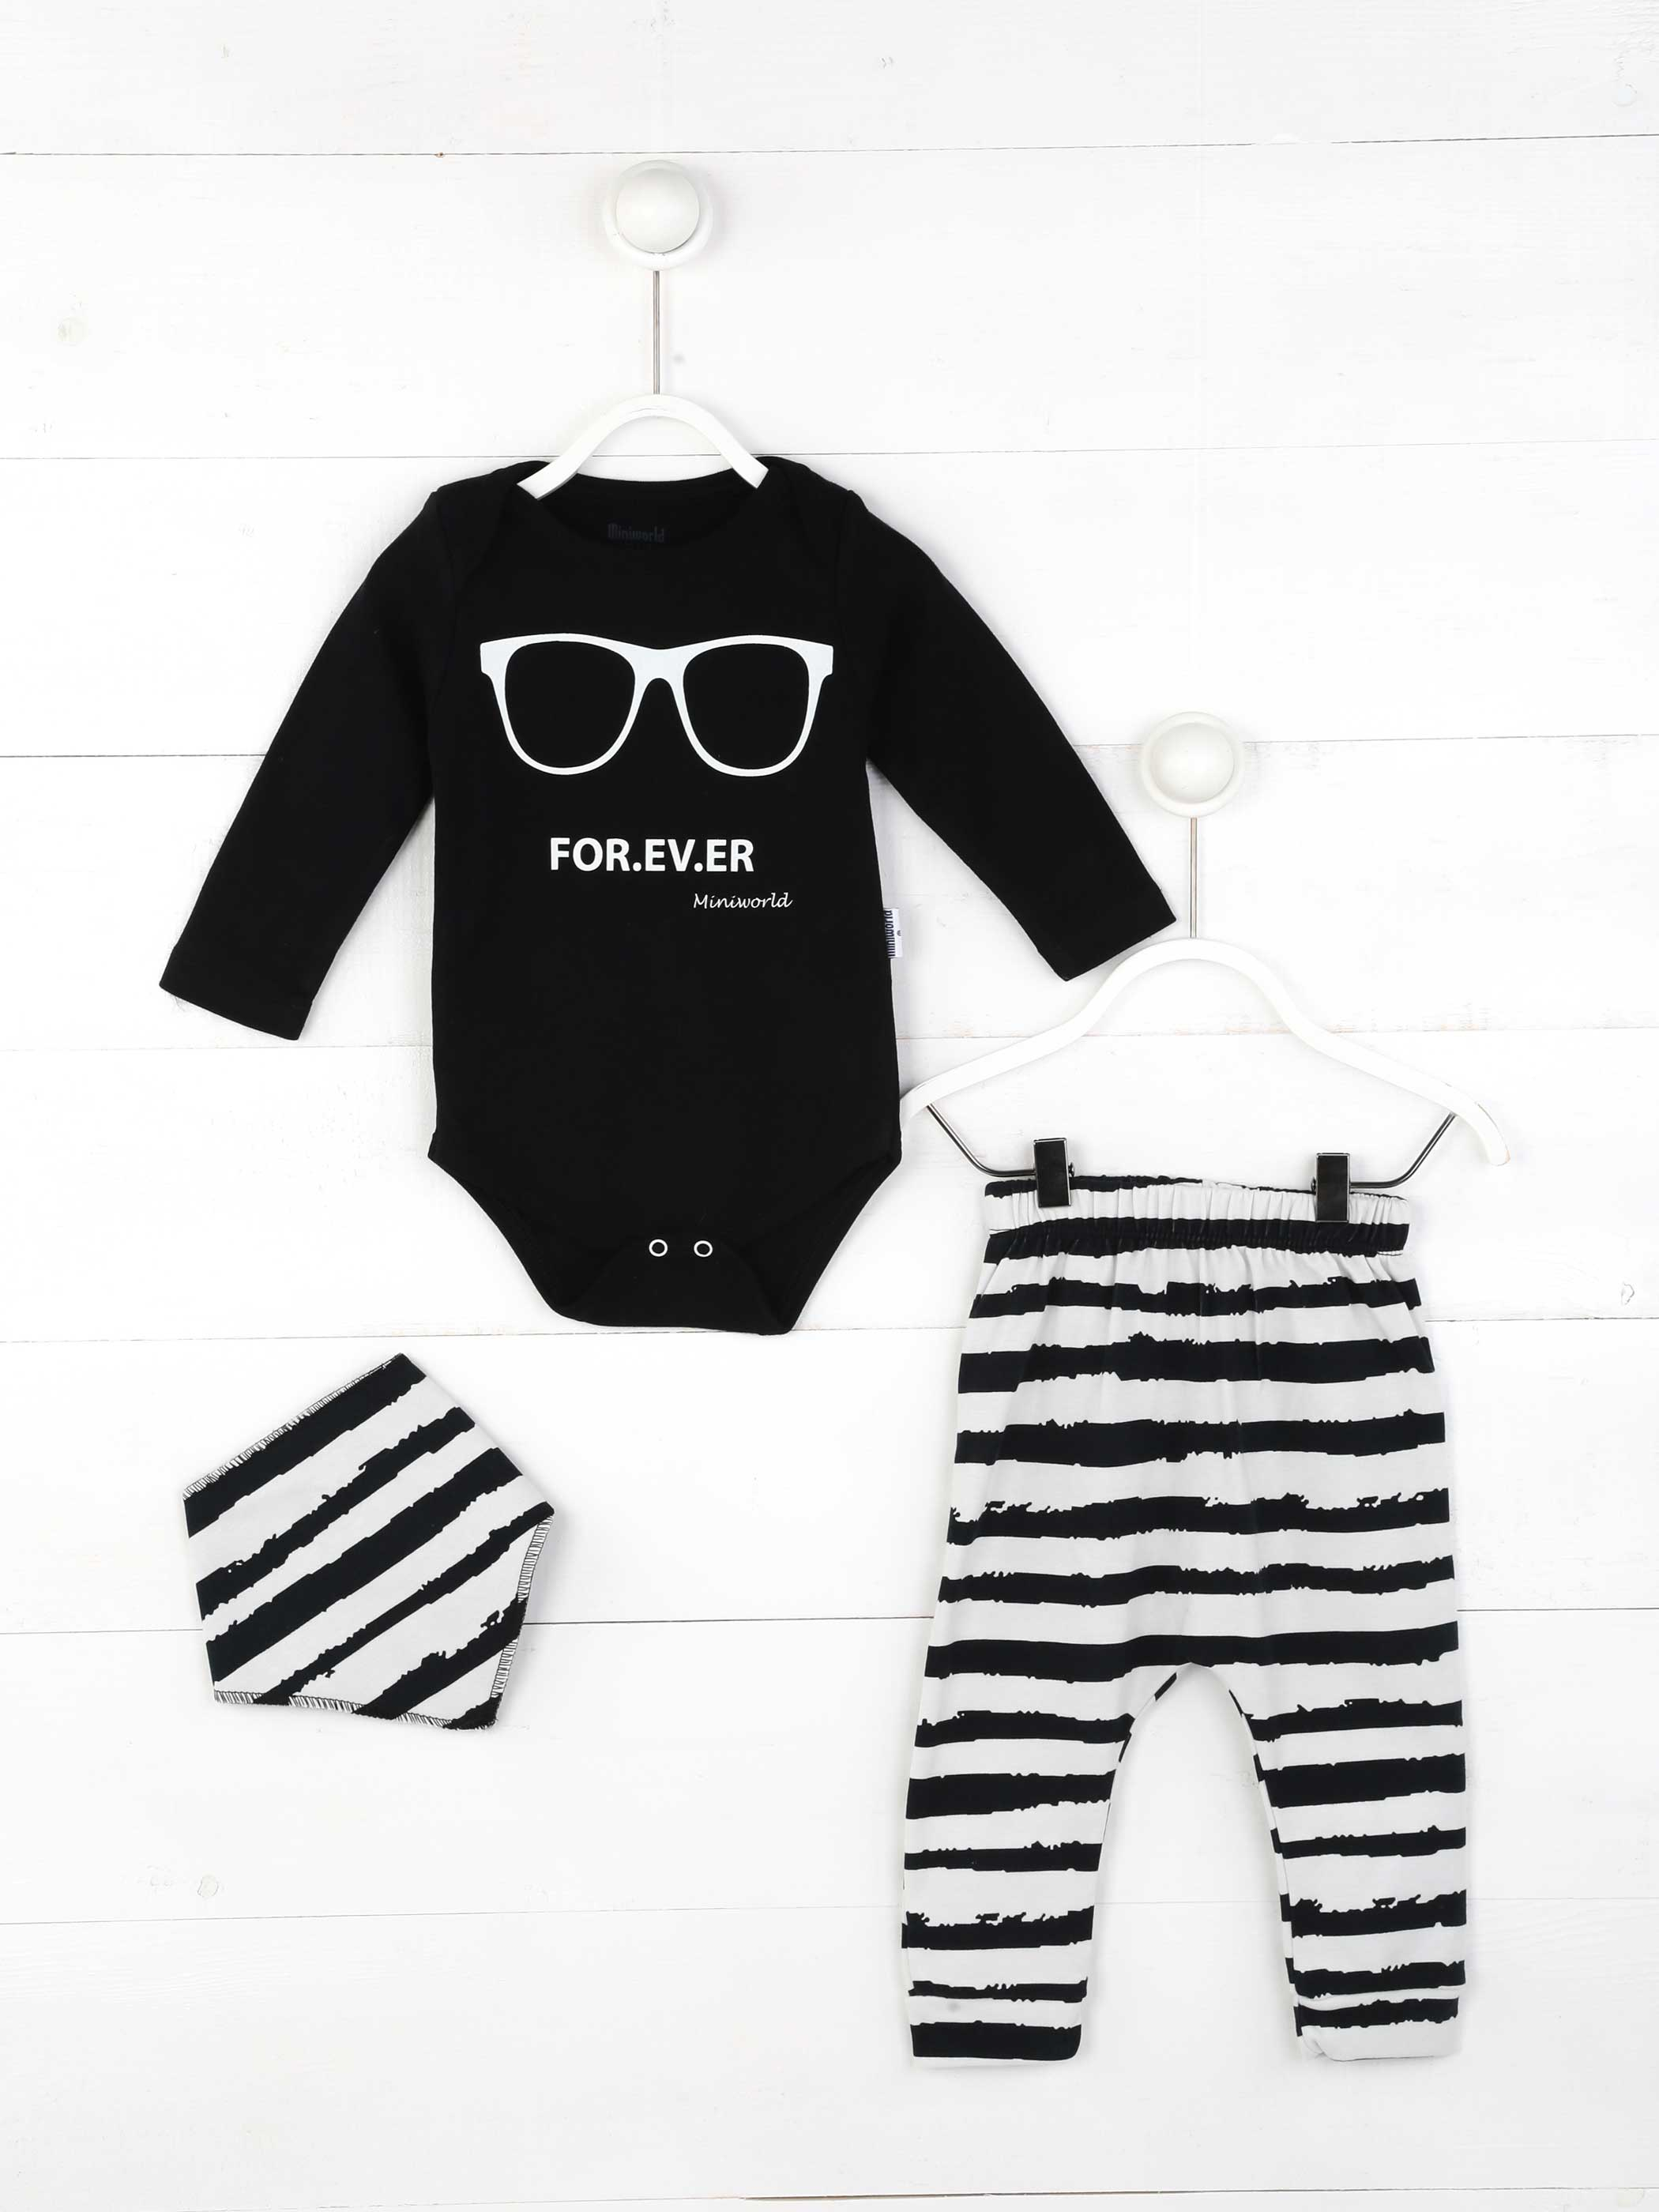 Girl Boy Babies Clothing 3-piece Set Cotton Fabric Baby Summer Clothes Gift Daily Casual Stylish Outfit Models